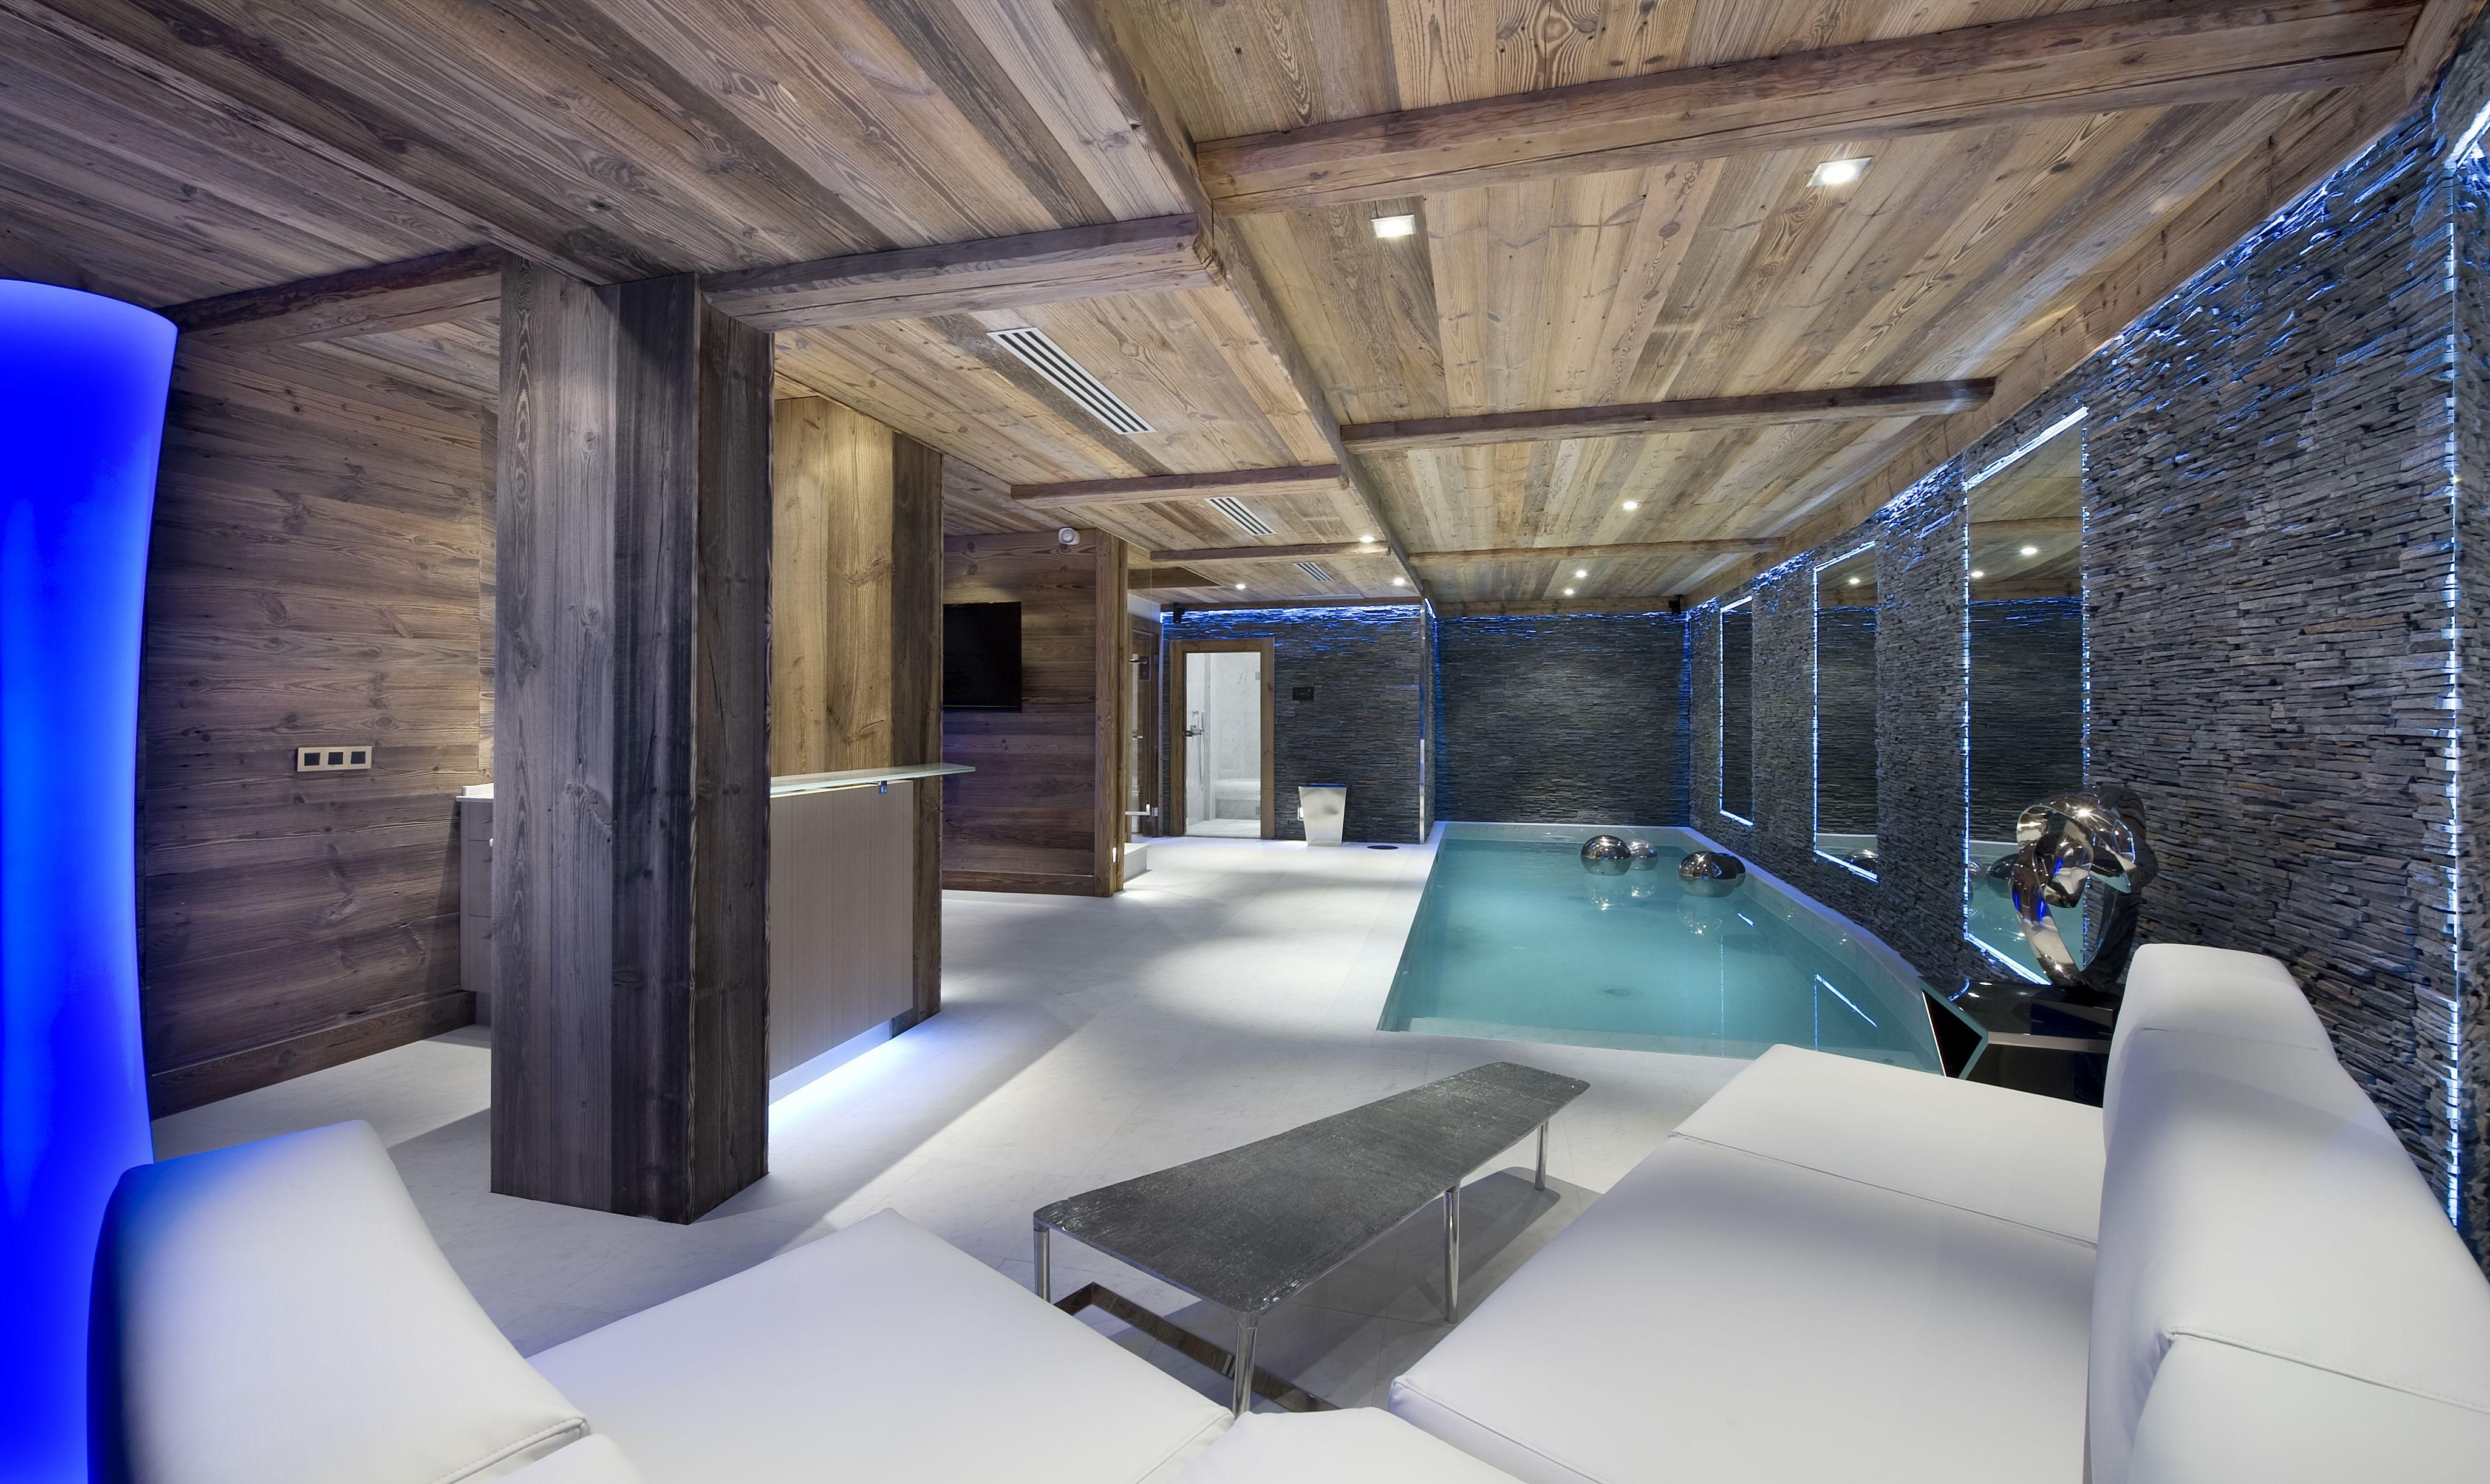 chalet eden is an elegant ski chalet located in courchevel in the french alps the chalet sleeps up to 10 guests in 5 spacious bedrooms this exceptional